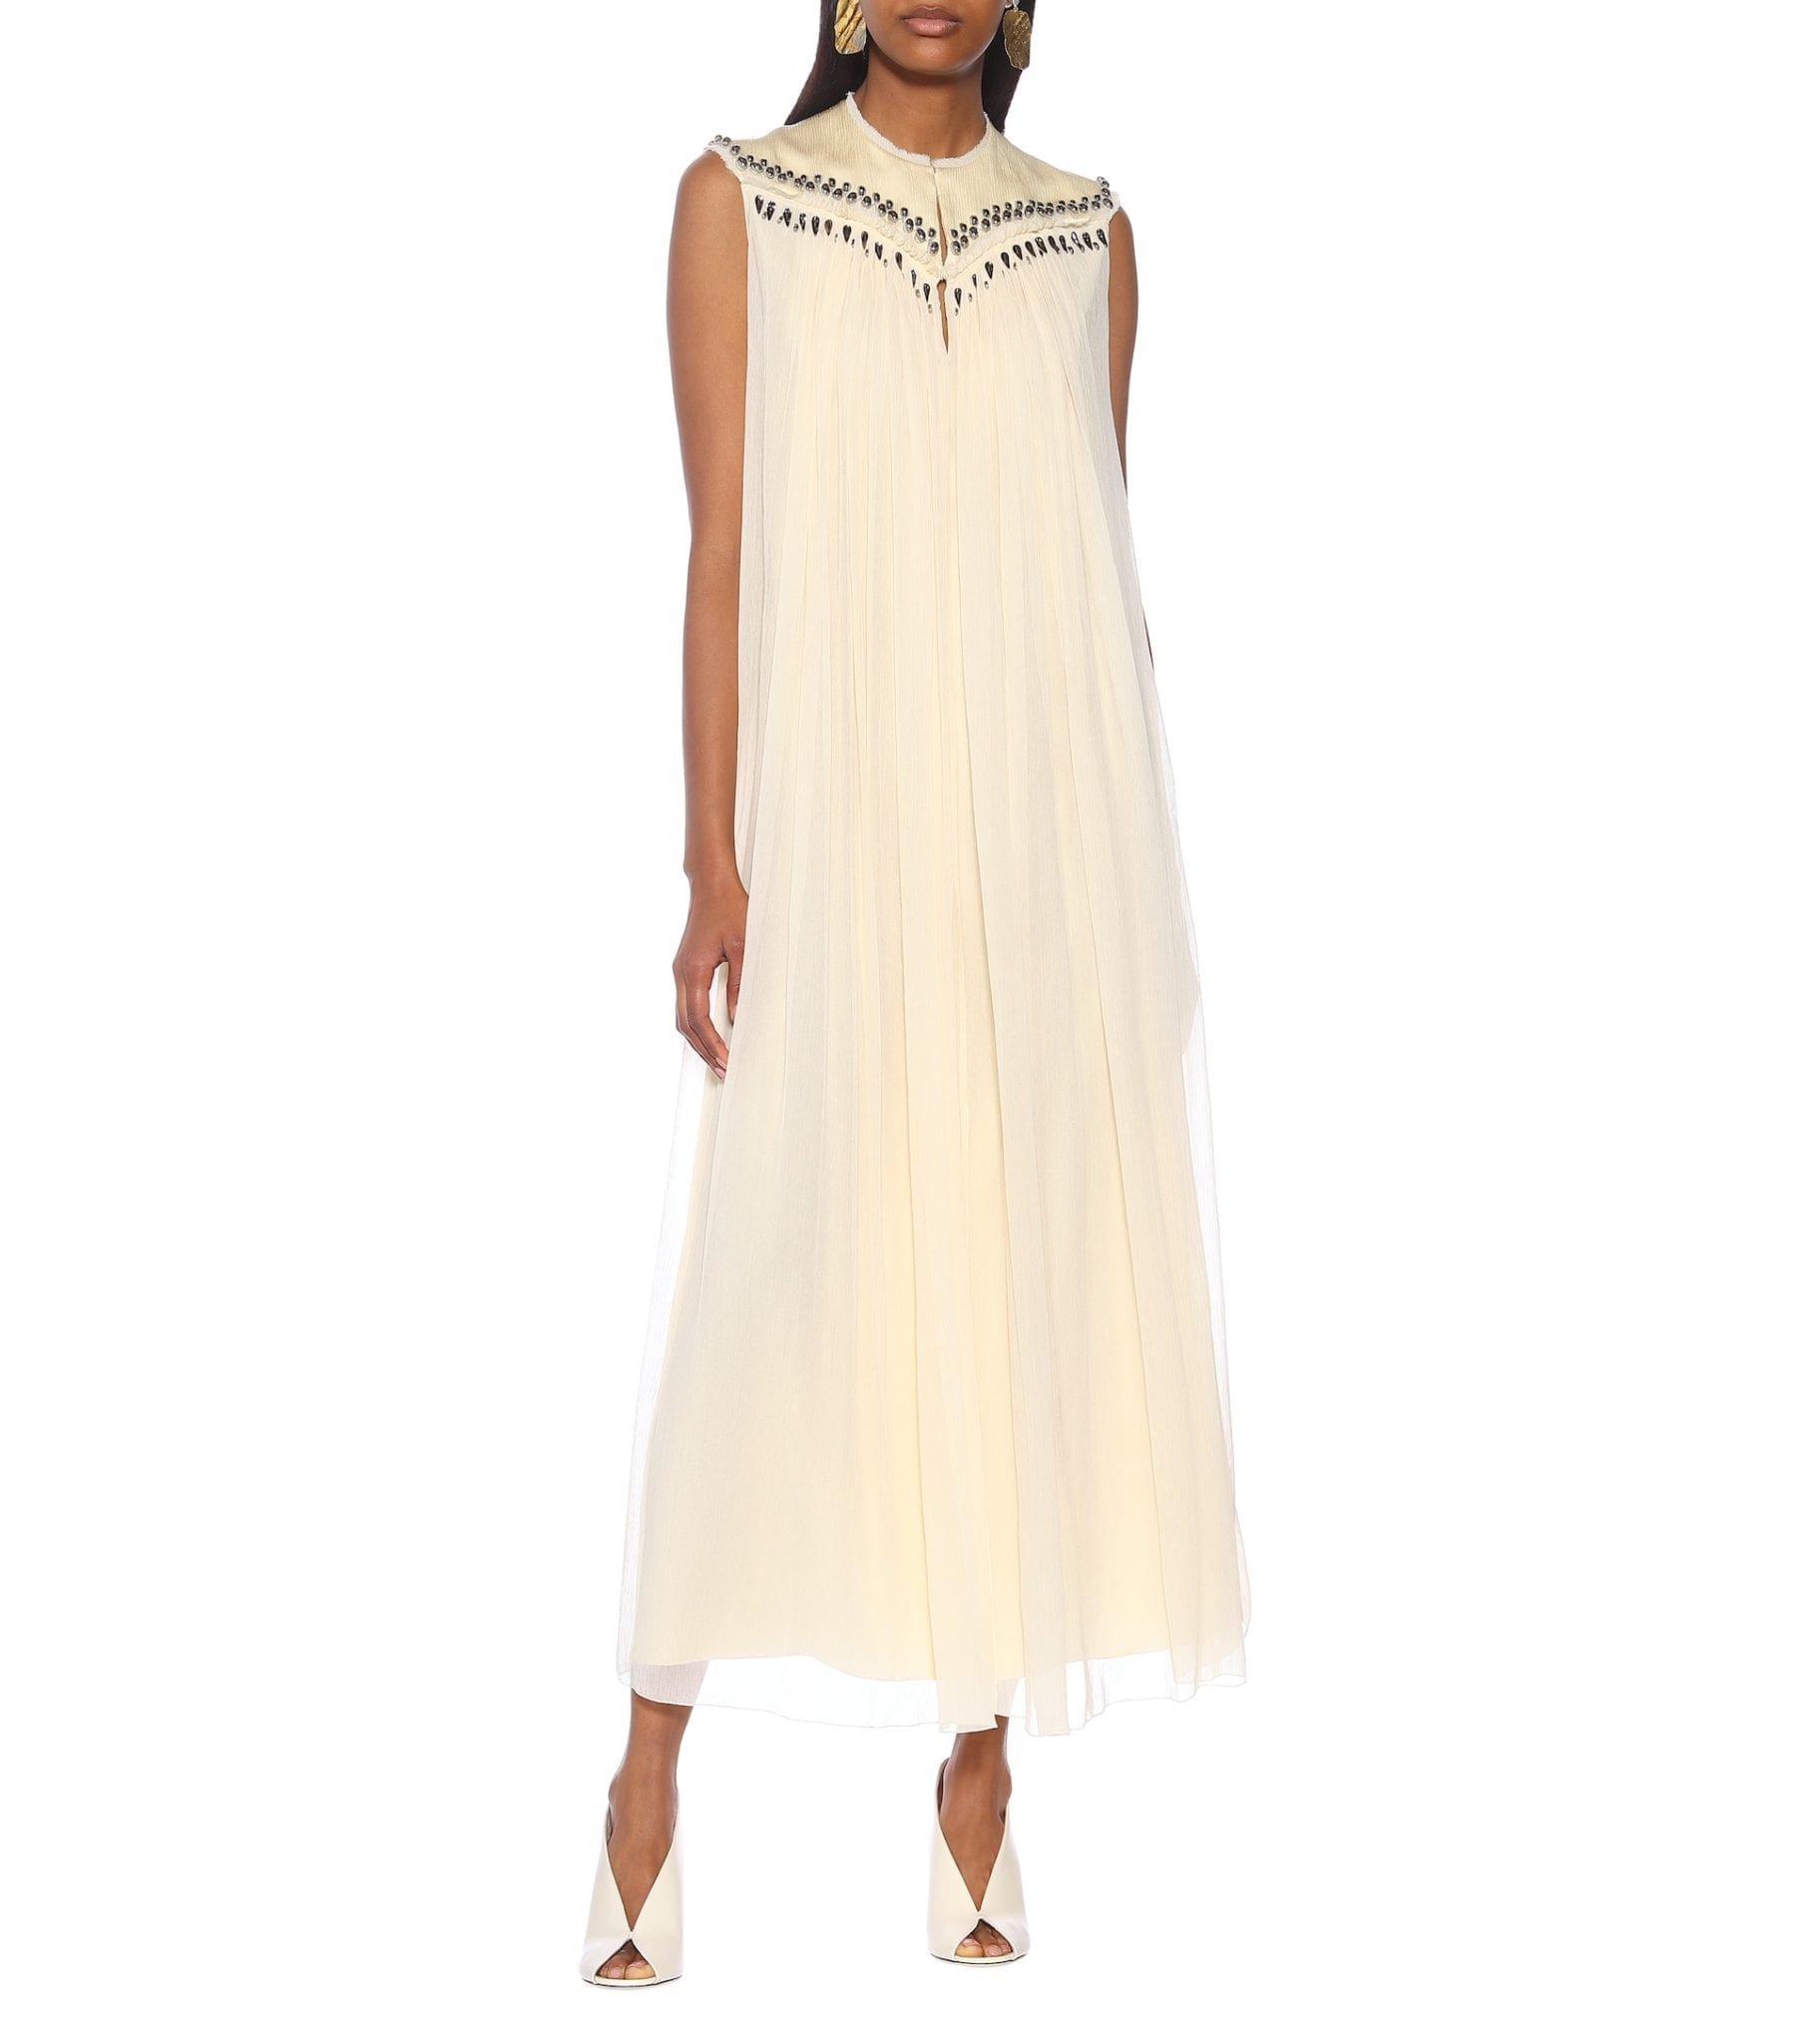 CHLOÉ Embellished Silk Midi Dress